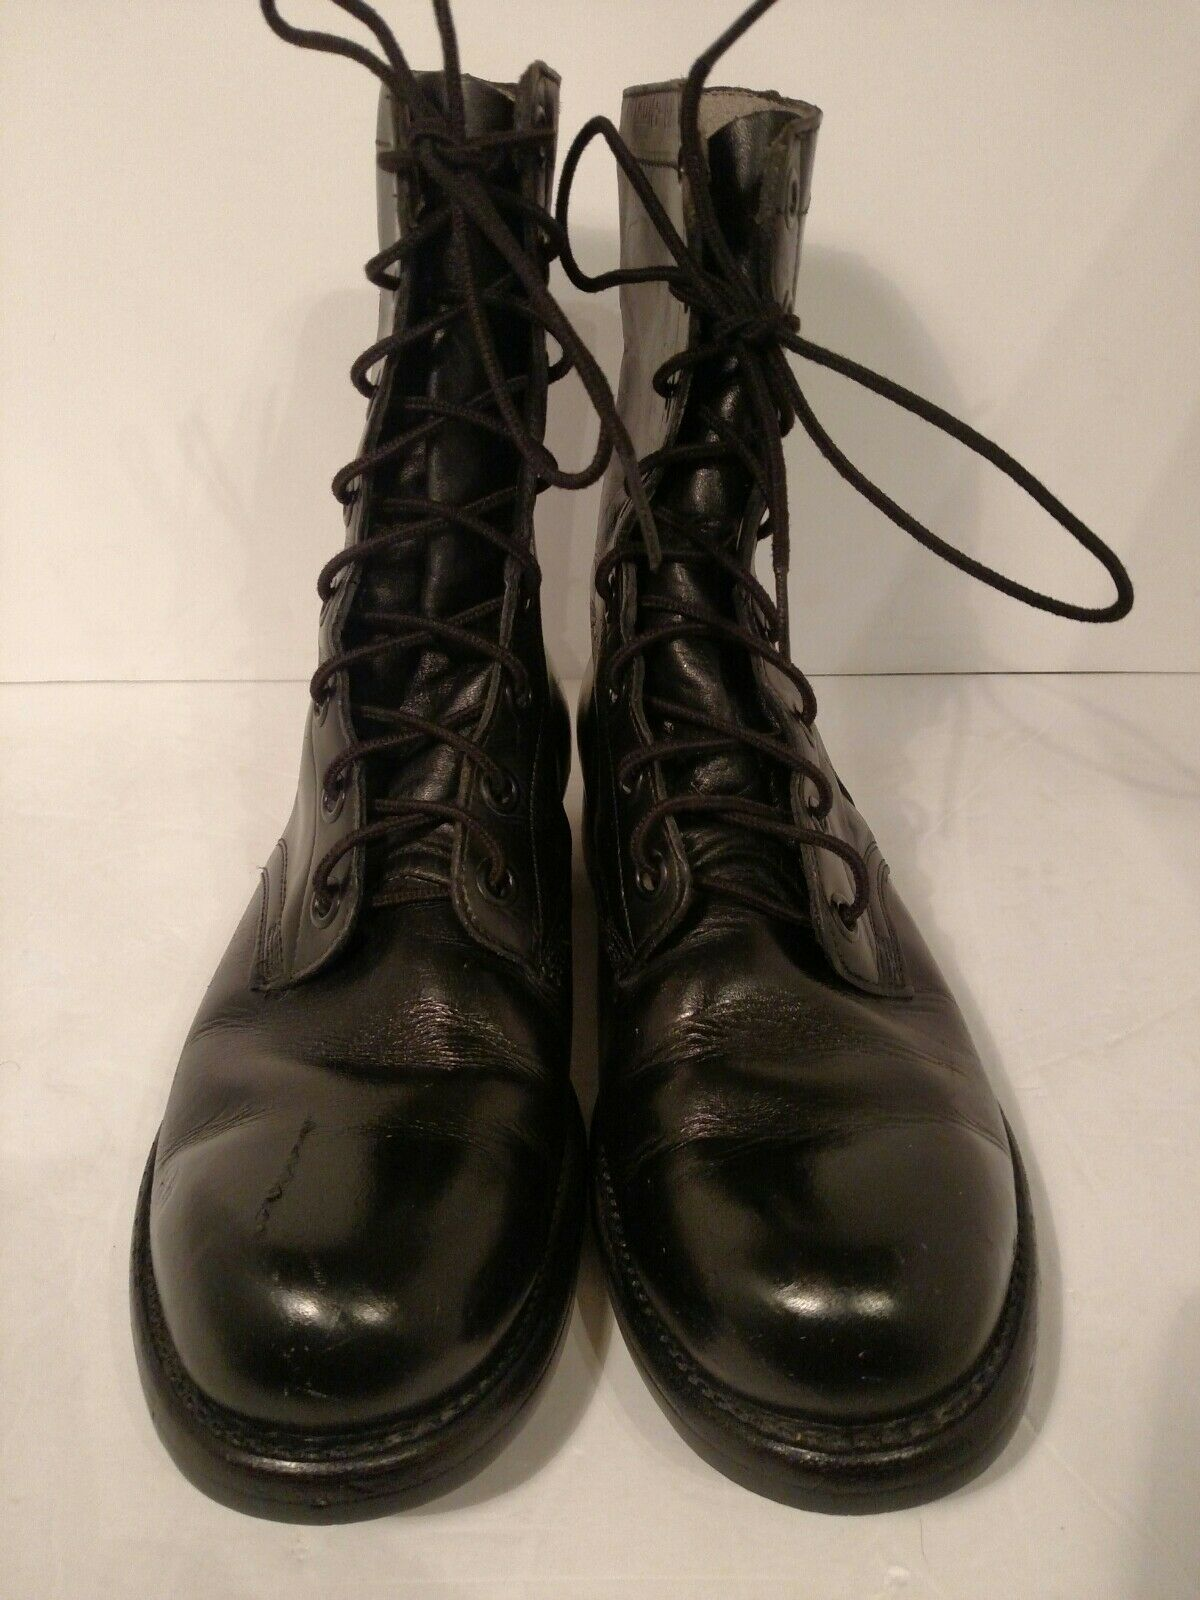 Panco 8-60 Vintage Leather Military Boots Size 8R